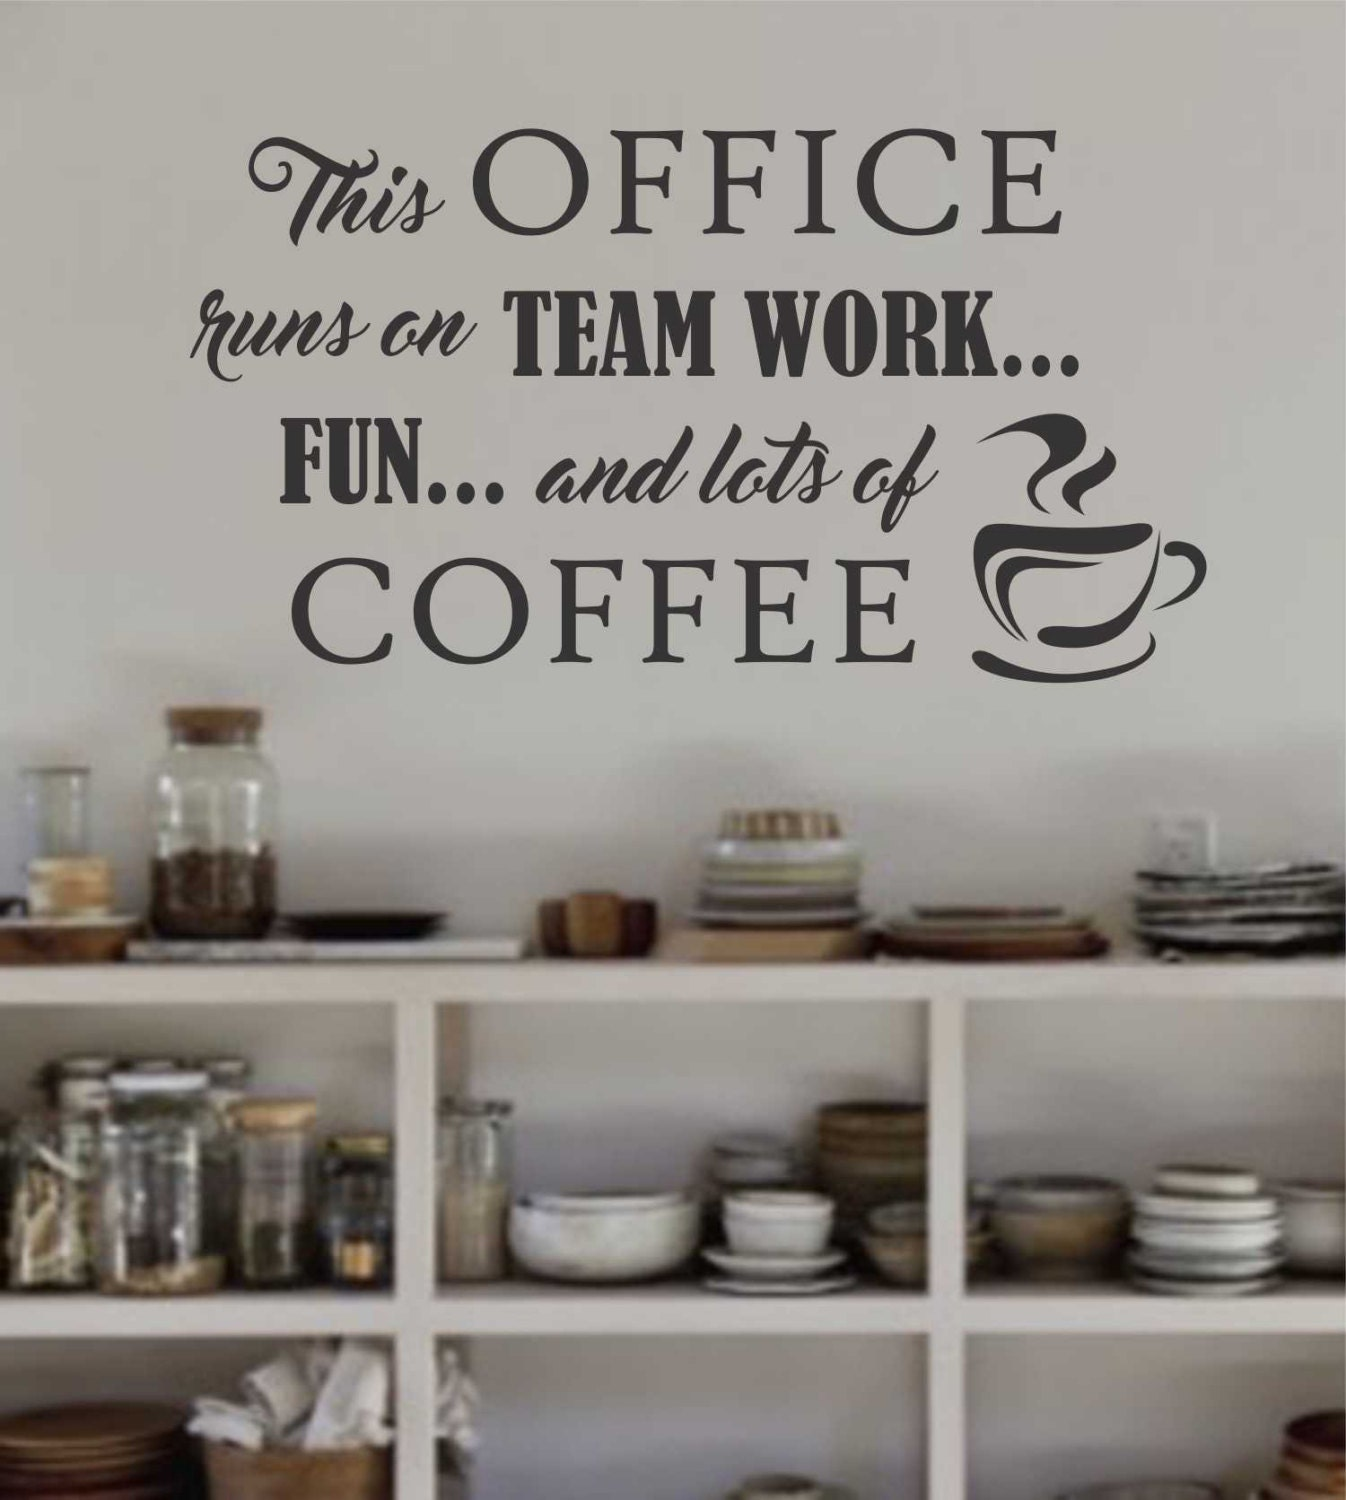 office runs on team work and coffee break room decal vinyl wall lettering vinyl wall decals vinyl letters wall quotes office decal